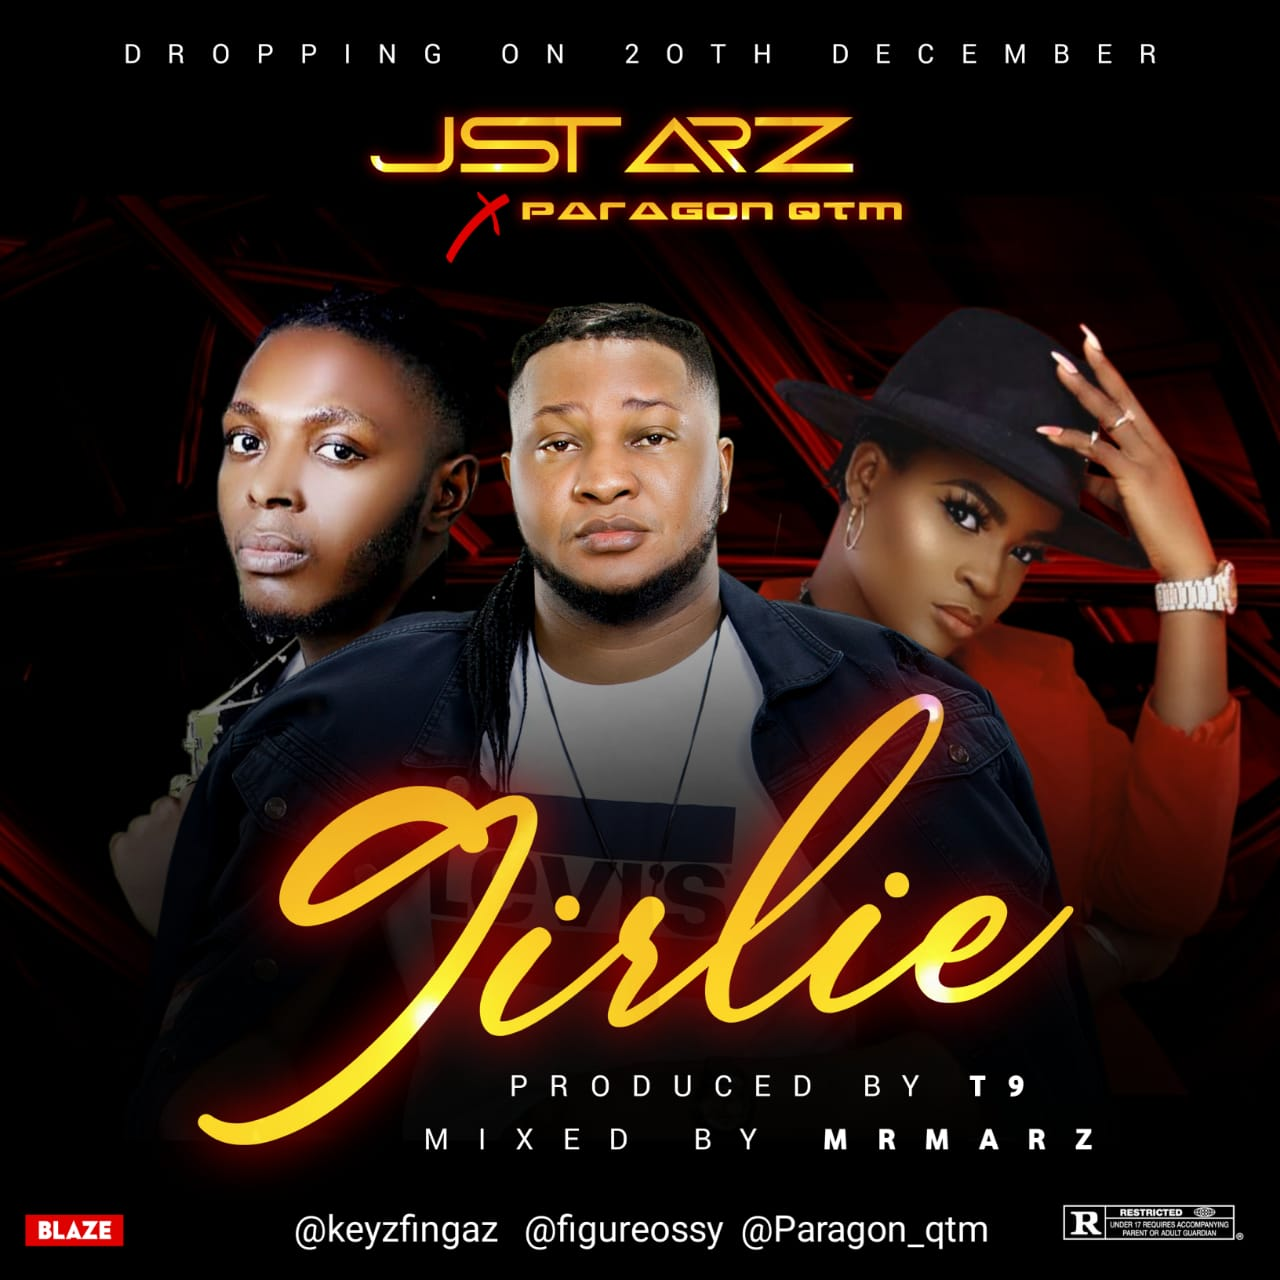 Download J-starz Girlie ft Paragon Qtm Mp3